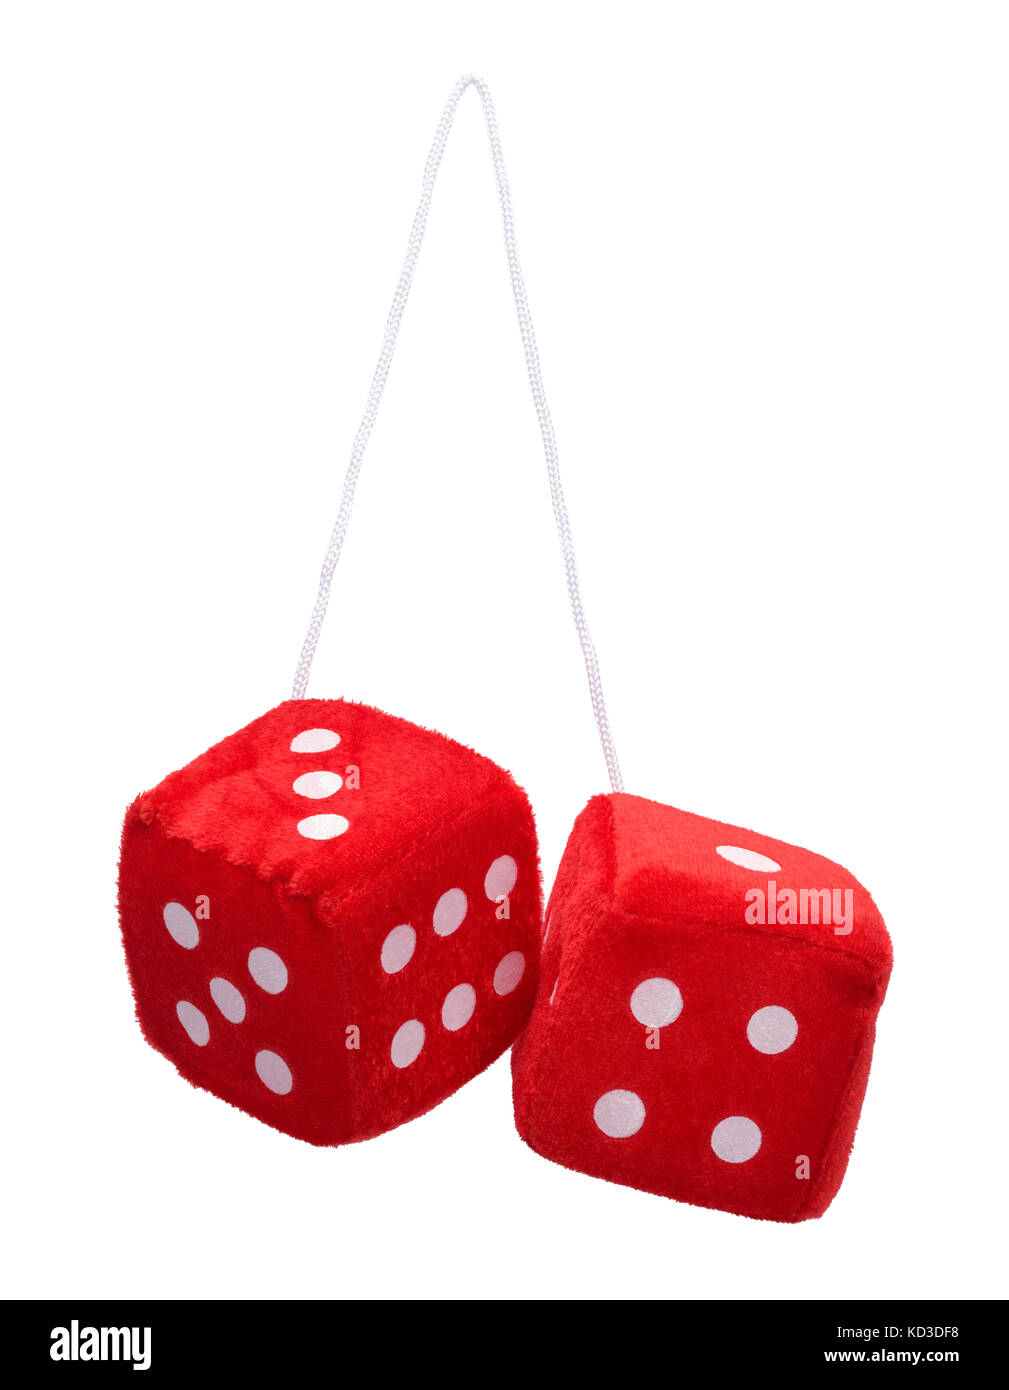 Red Fuzzy Hanging Dice Isolated on White Background. - Stock Image